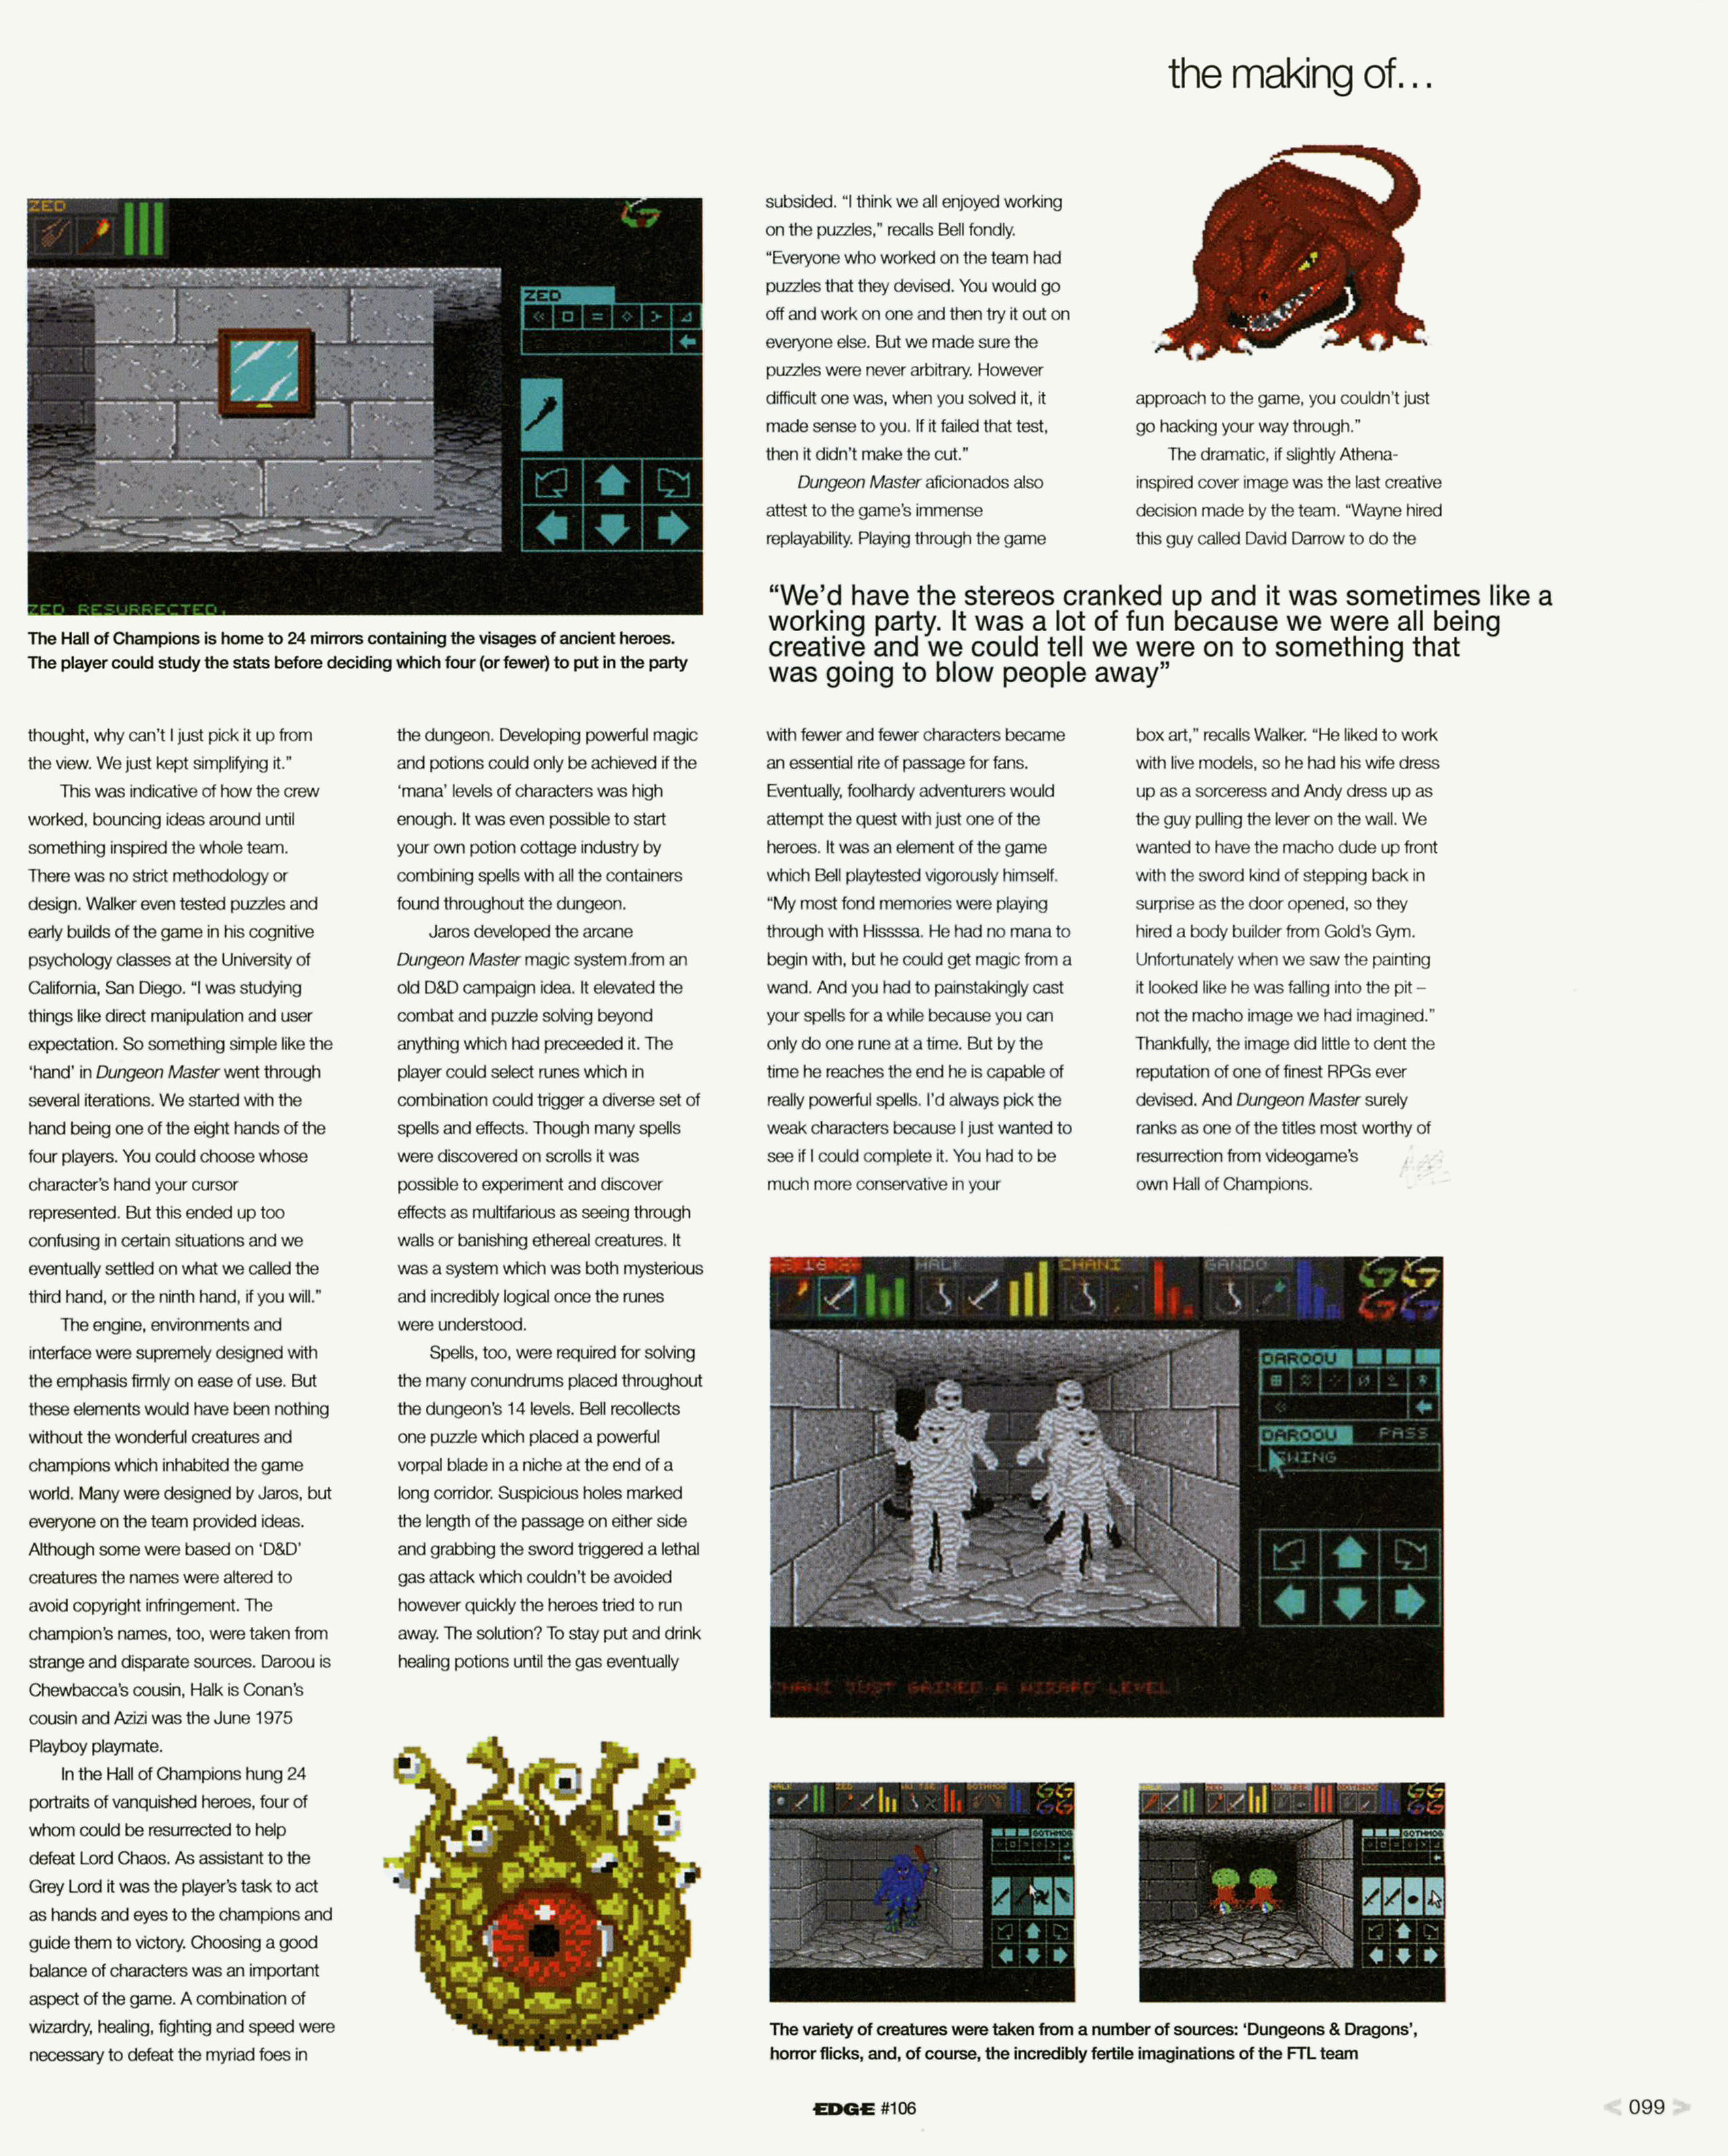 Dungeon Master Game Series Article published in British magazine 'Edge', Issue #106 January 2002, Page 99